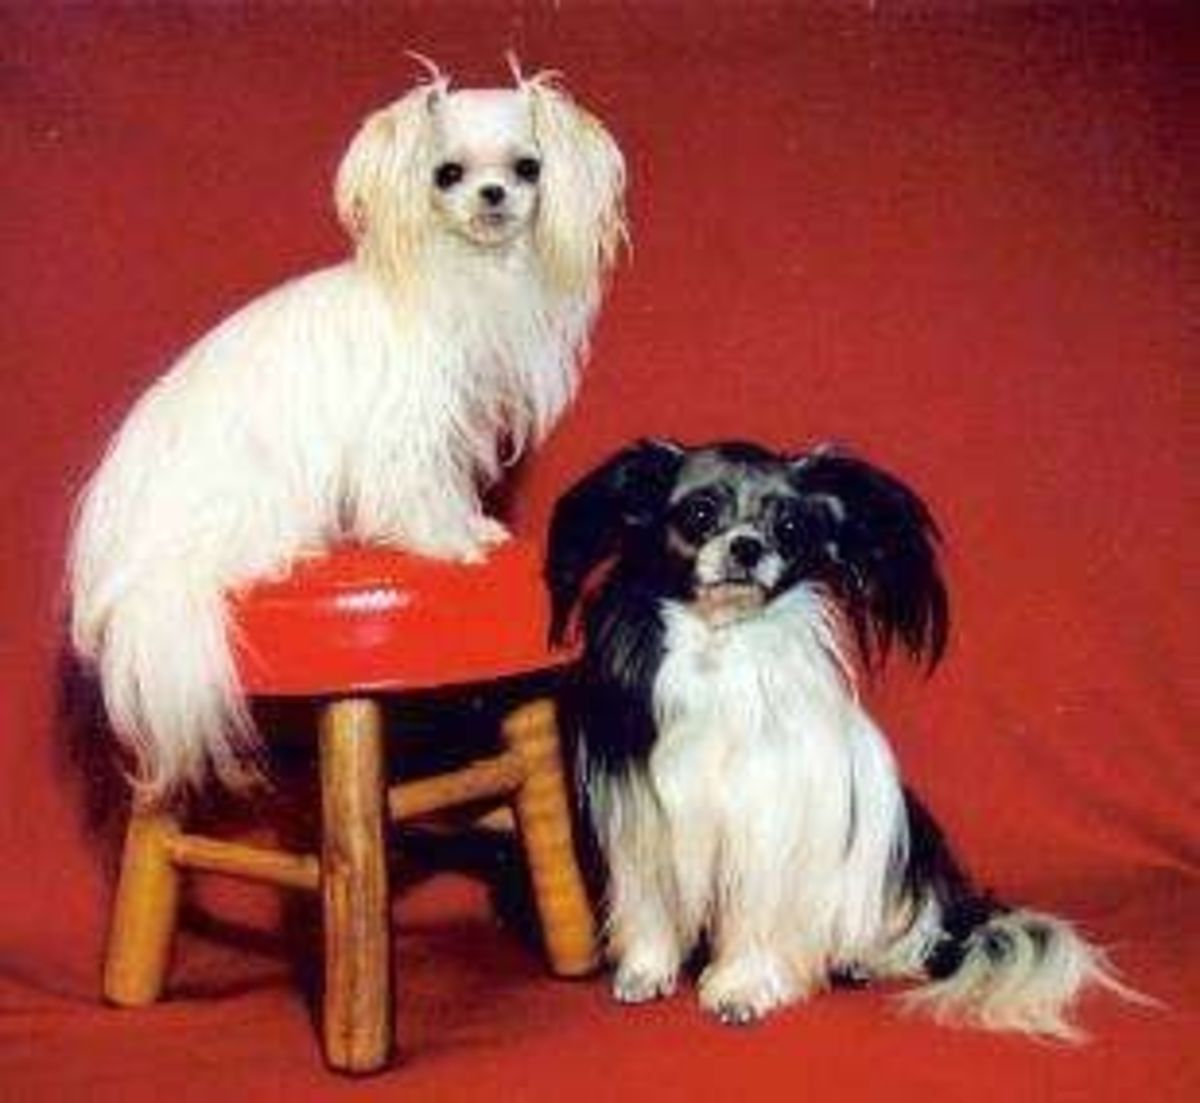 Yoshi is 2 1/2 lbs  and April is 5 lbs. (Photo courtesy of  the International Mi-Ki Registry.)  .